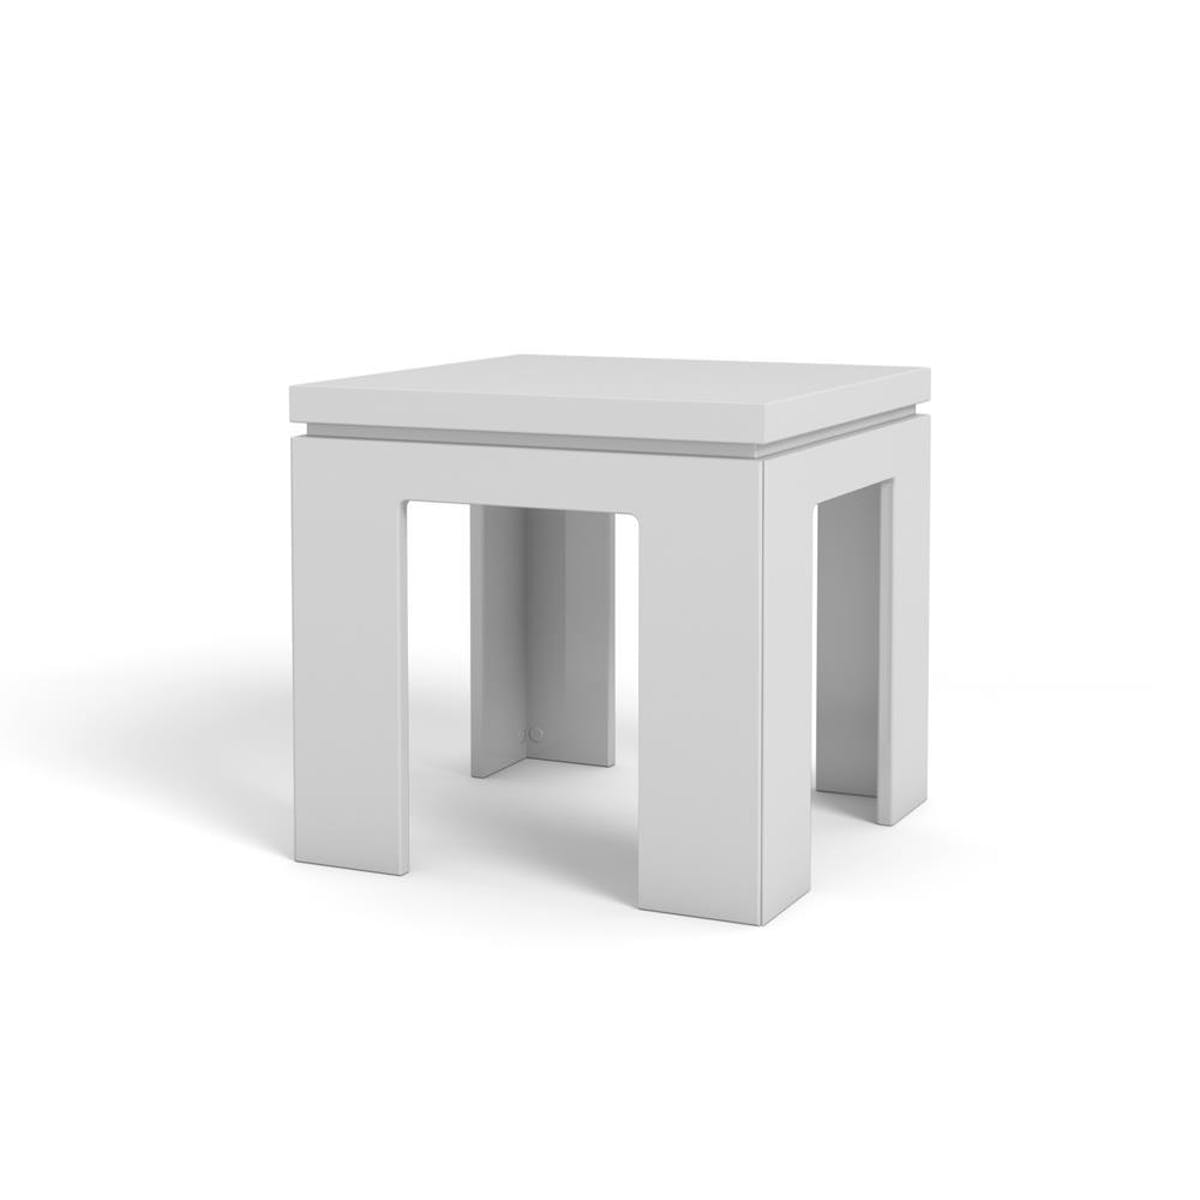 manhattan comfort bridge square length modern accent end tables table modish patio seating sets clearance vita silvia starfish lamp wood asus maroc marble coffee coastal